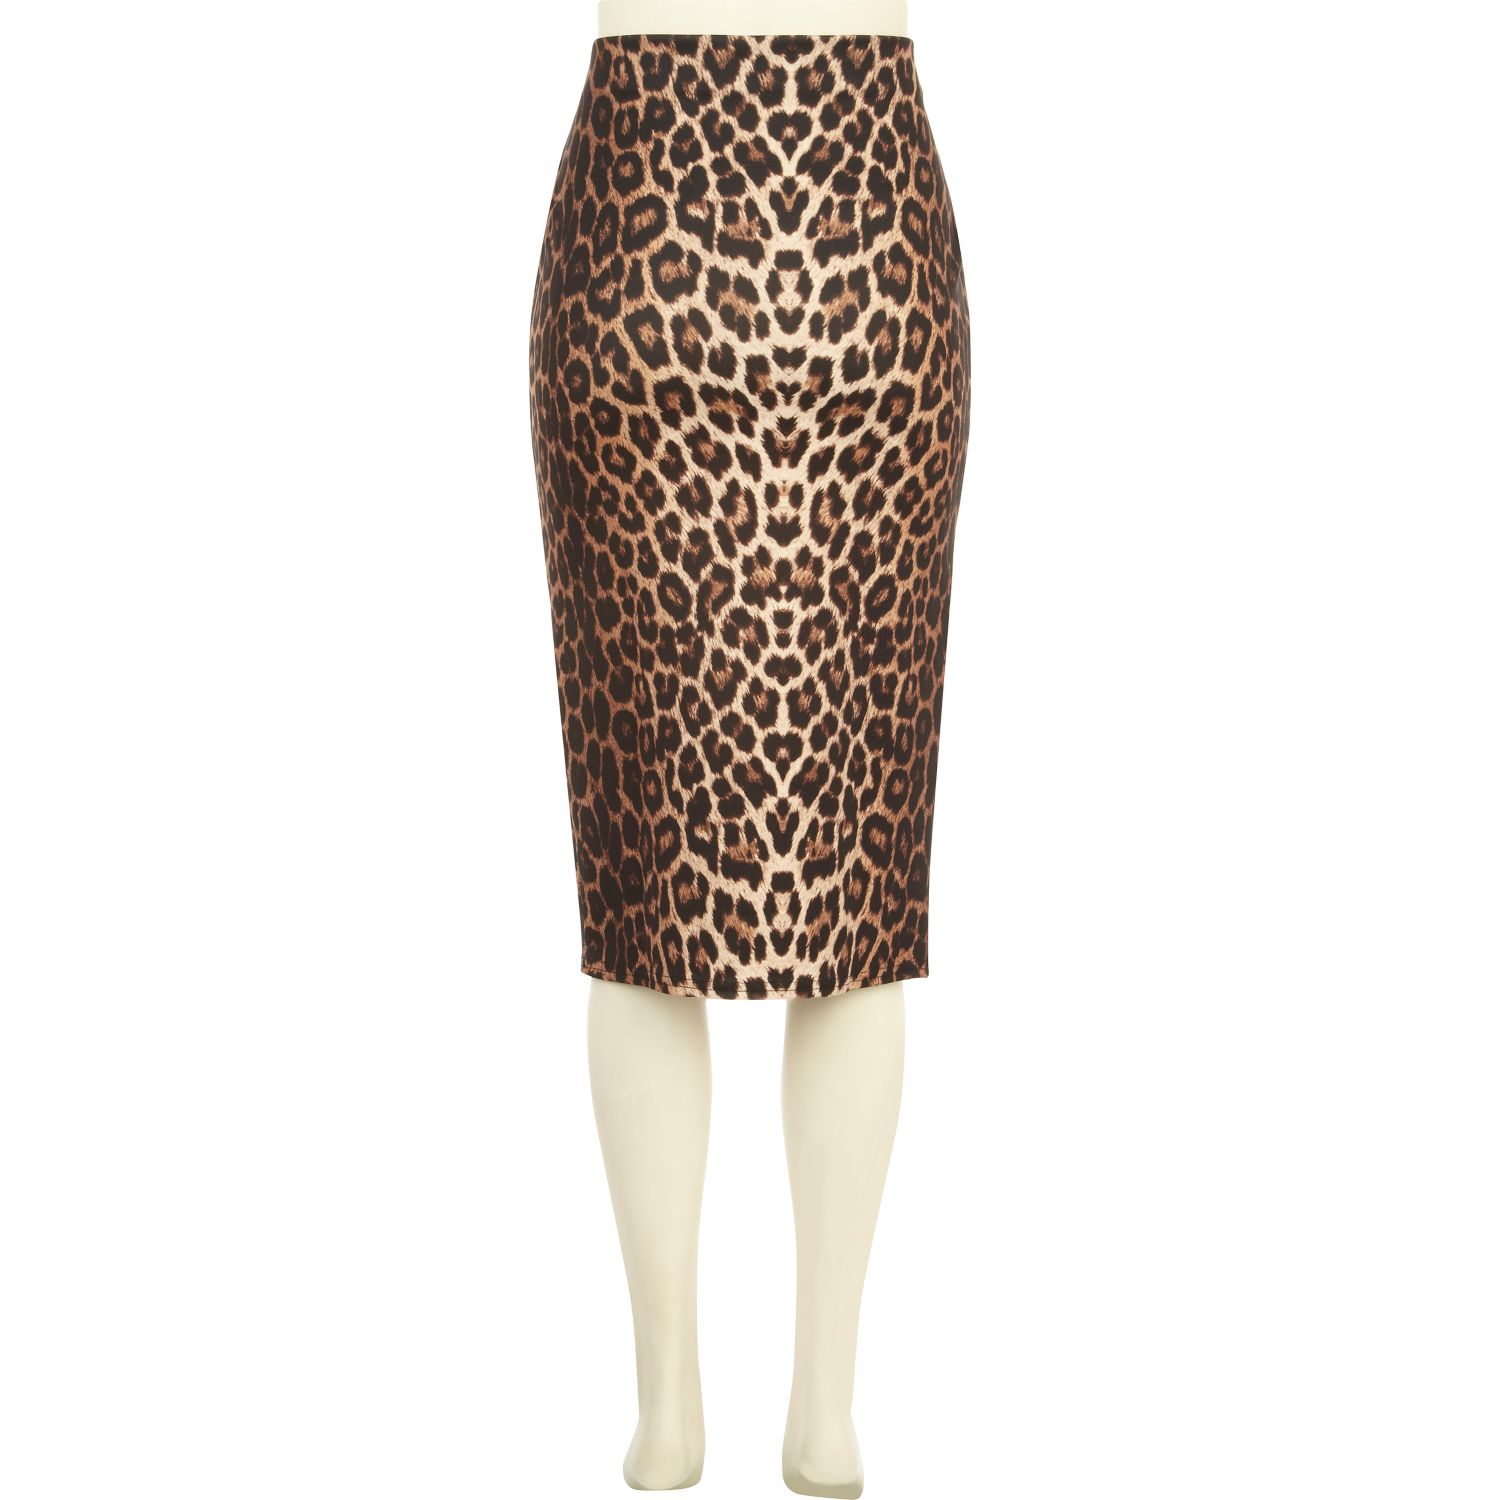 Find great deals on eBay for leopard pencil skirt. Shop with confidence.